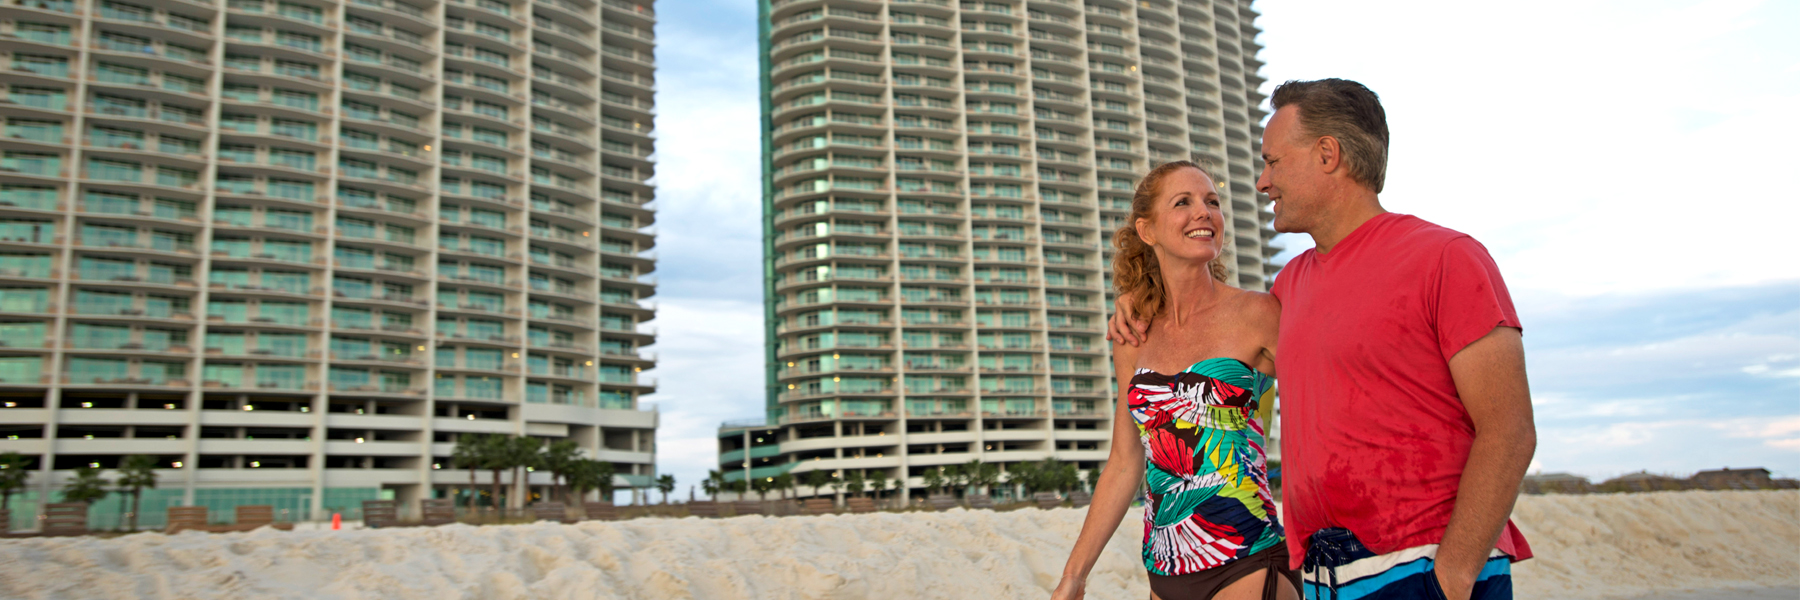 Couples Getaway at Turquoise Place in Orange Beach